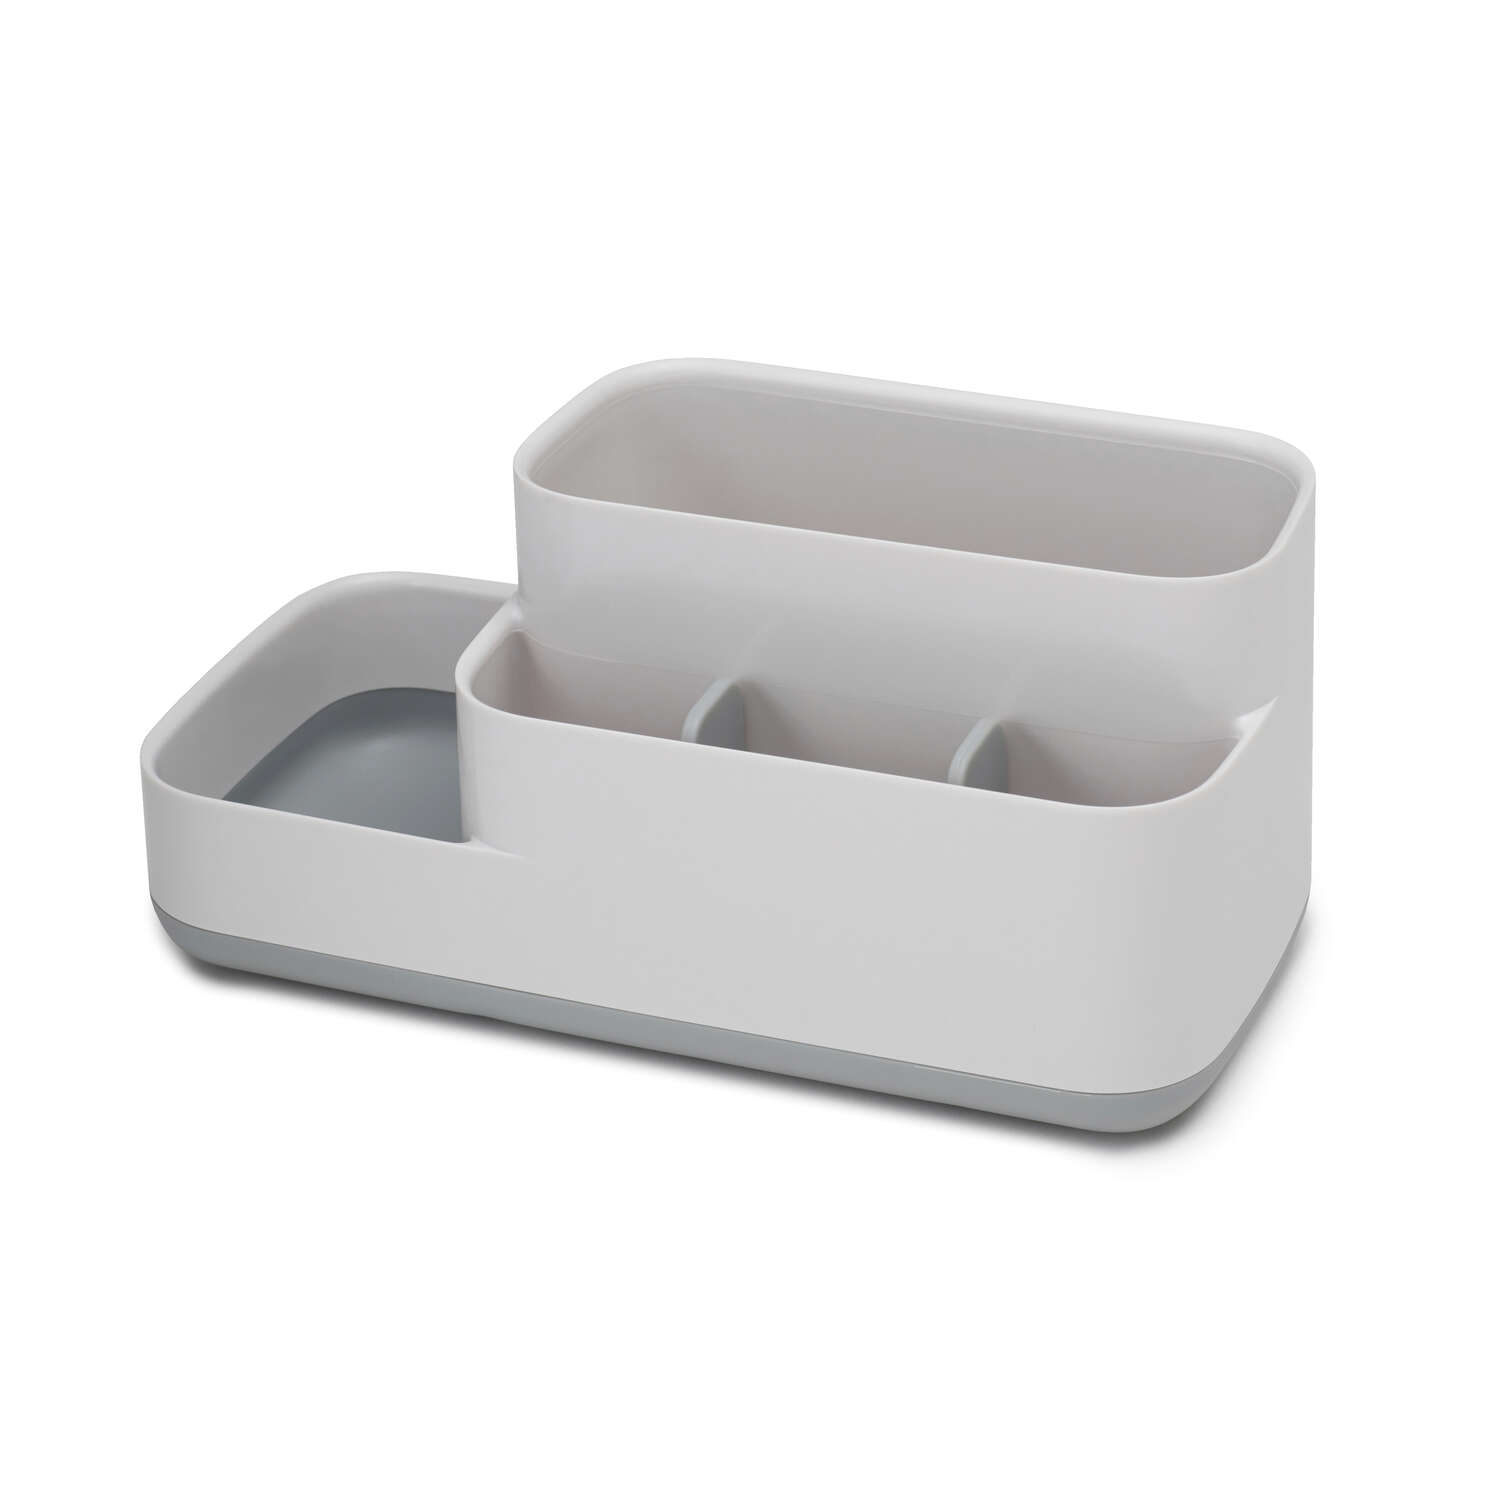 Joseph Joseph  EasyStore  Caddy/Razor/Toothbrush Holder  4-3/4 in. H x 4-1/2 inch  W x 9-3/4 in. L G